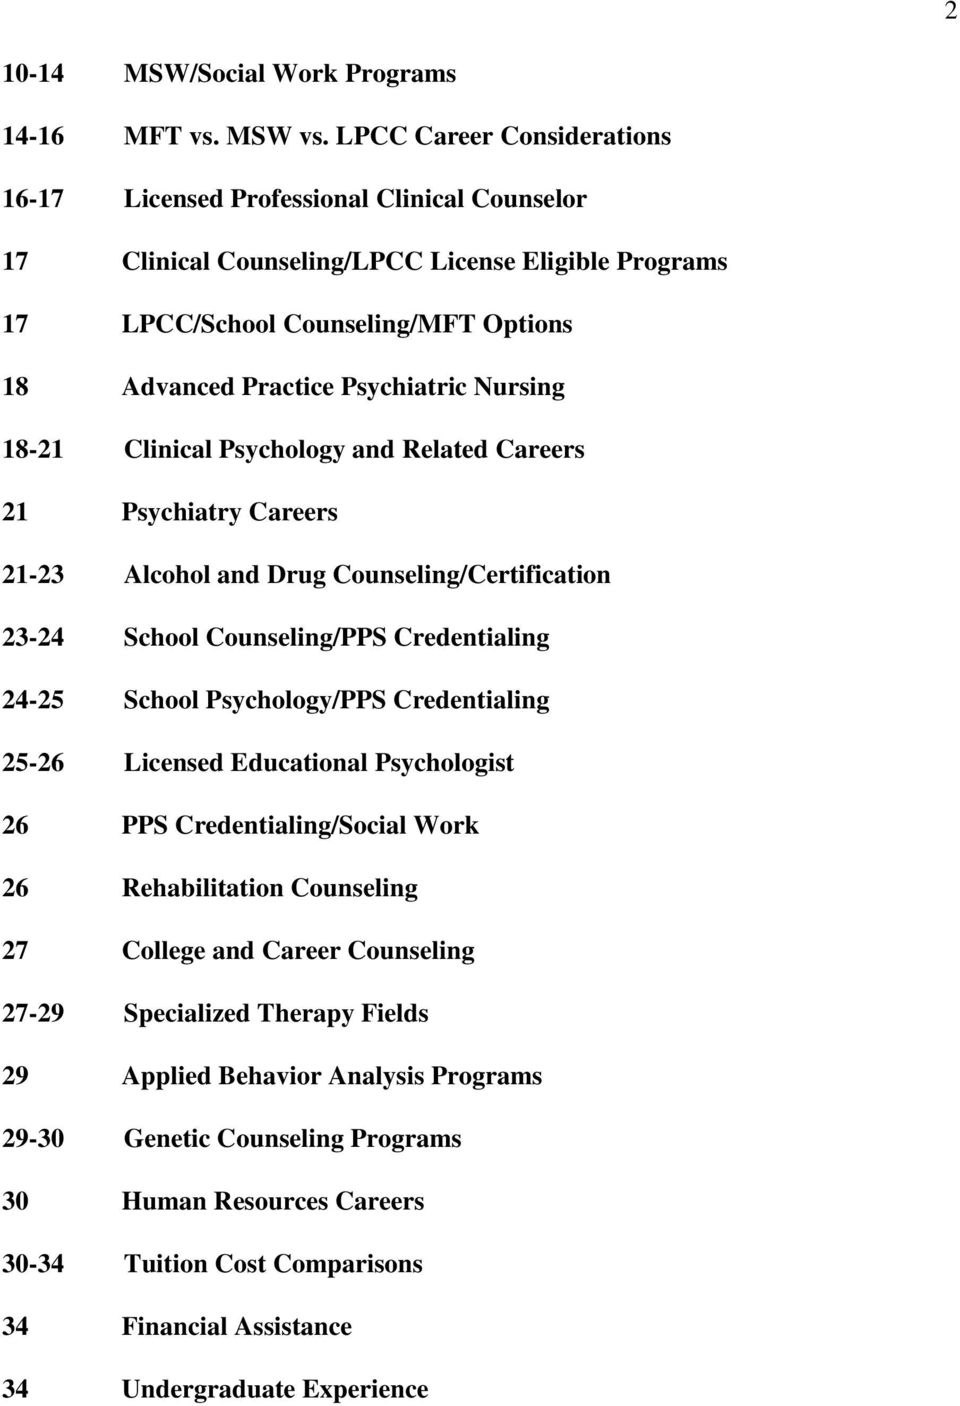 Nursing 18-21 Clinical Psychology and Related Careers 21 Psychiatry Careers 21-23 Alcohol and Drug Counseling/Certification 23-24 School Counseling/PPS Credentialing 24-25 School Psychology/PPS